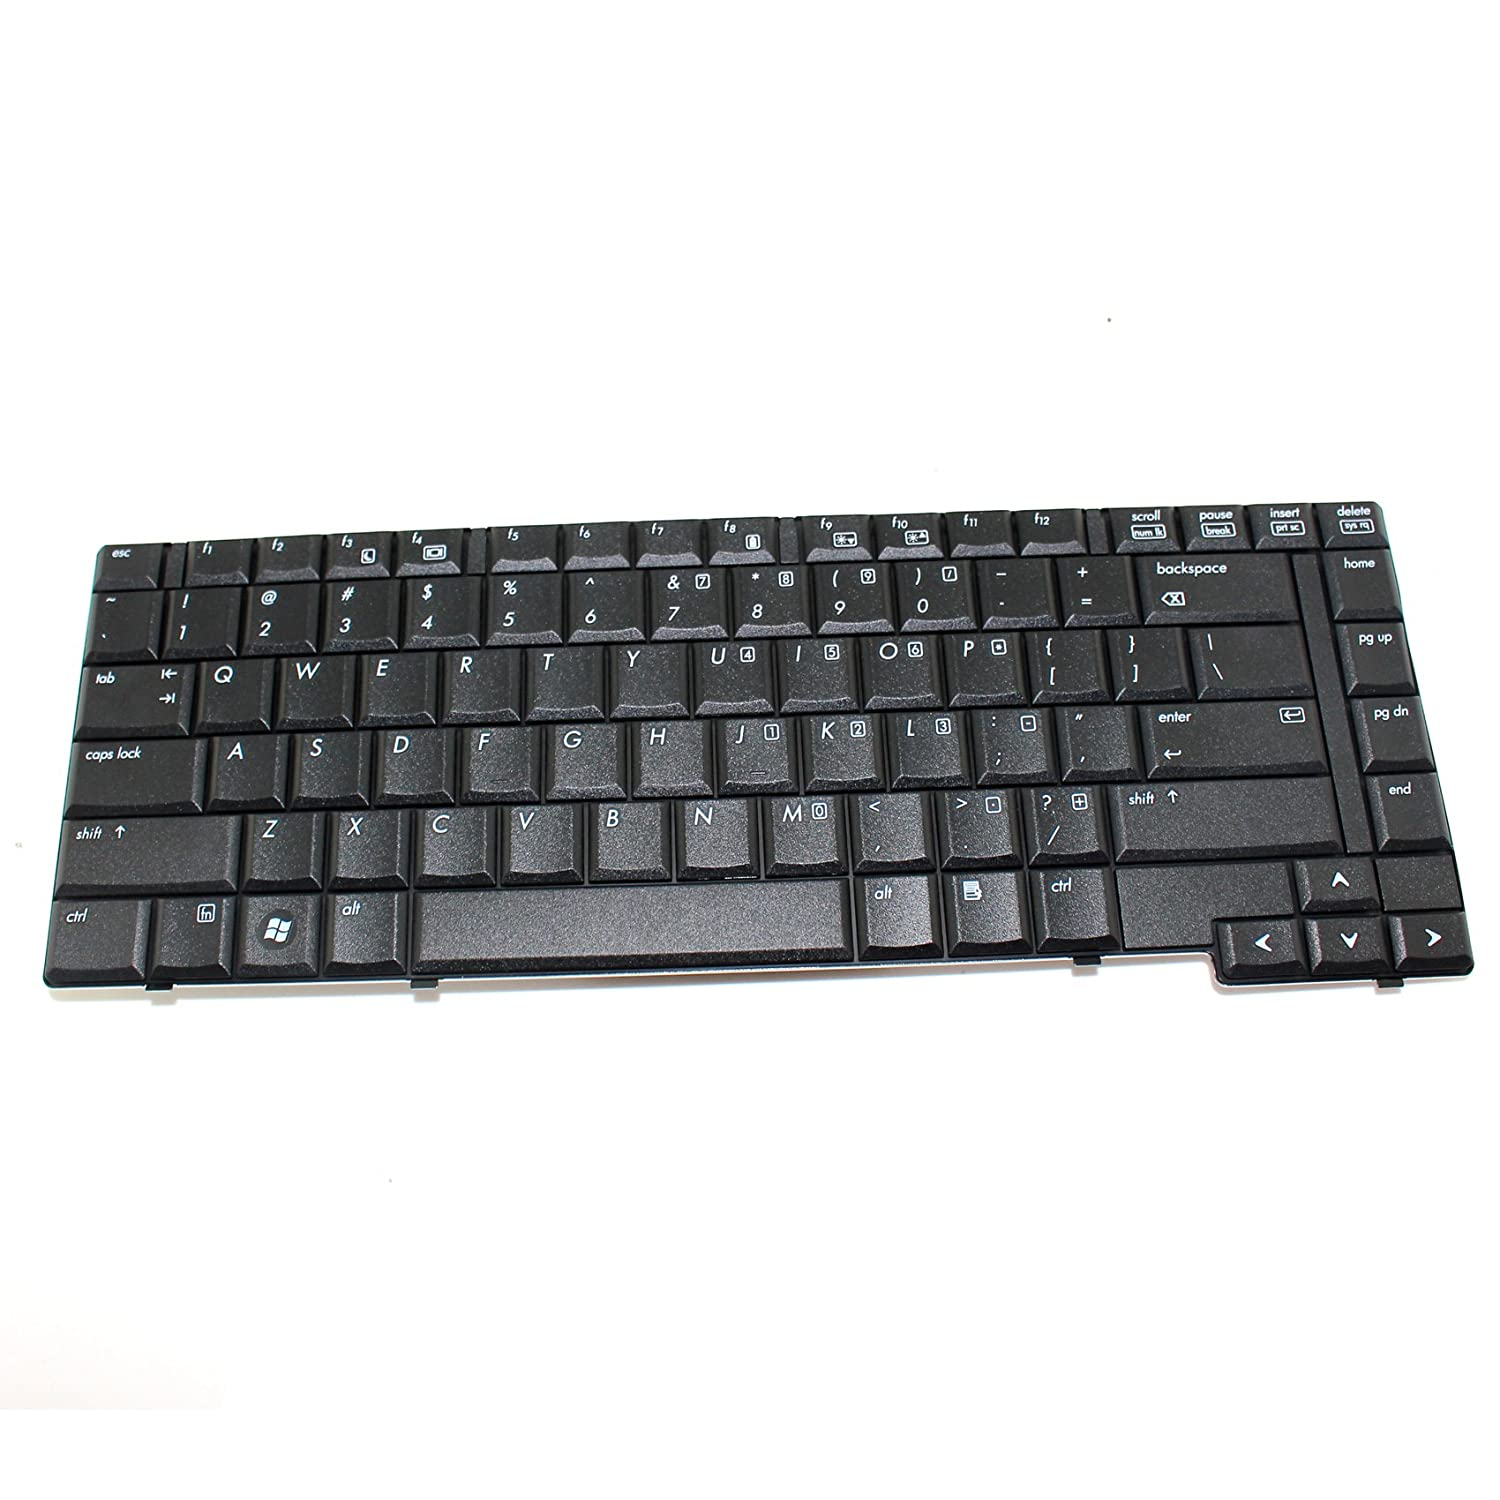 Generic New Black Laptop US Keyboard for HP Compaq 6530B 6535B Series Replacement Parts oem 100% совместимый dc19v 4 74a 90w ноутбук адаптер для hp compaq 2000 series 6000 series сша